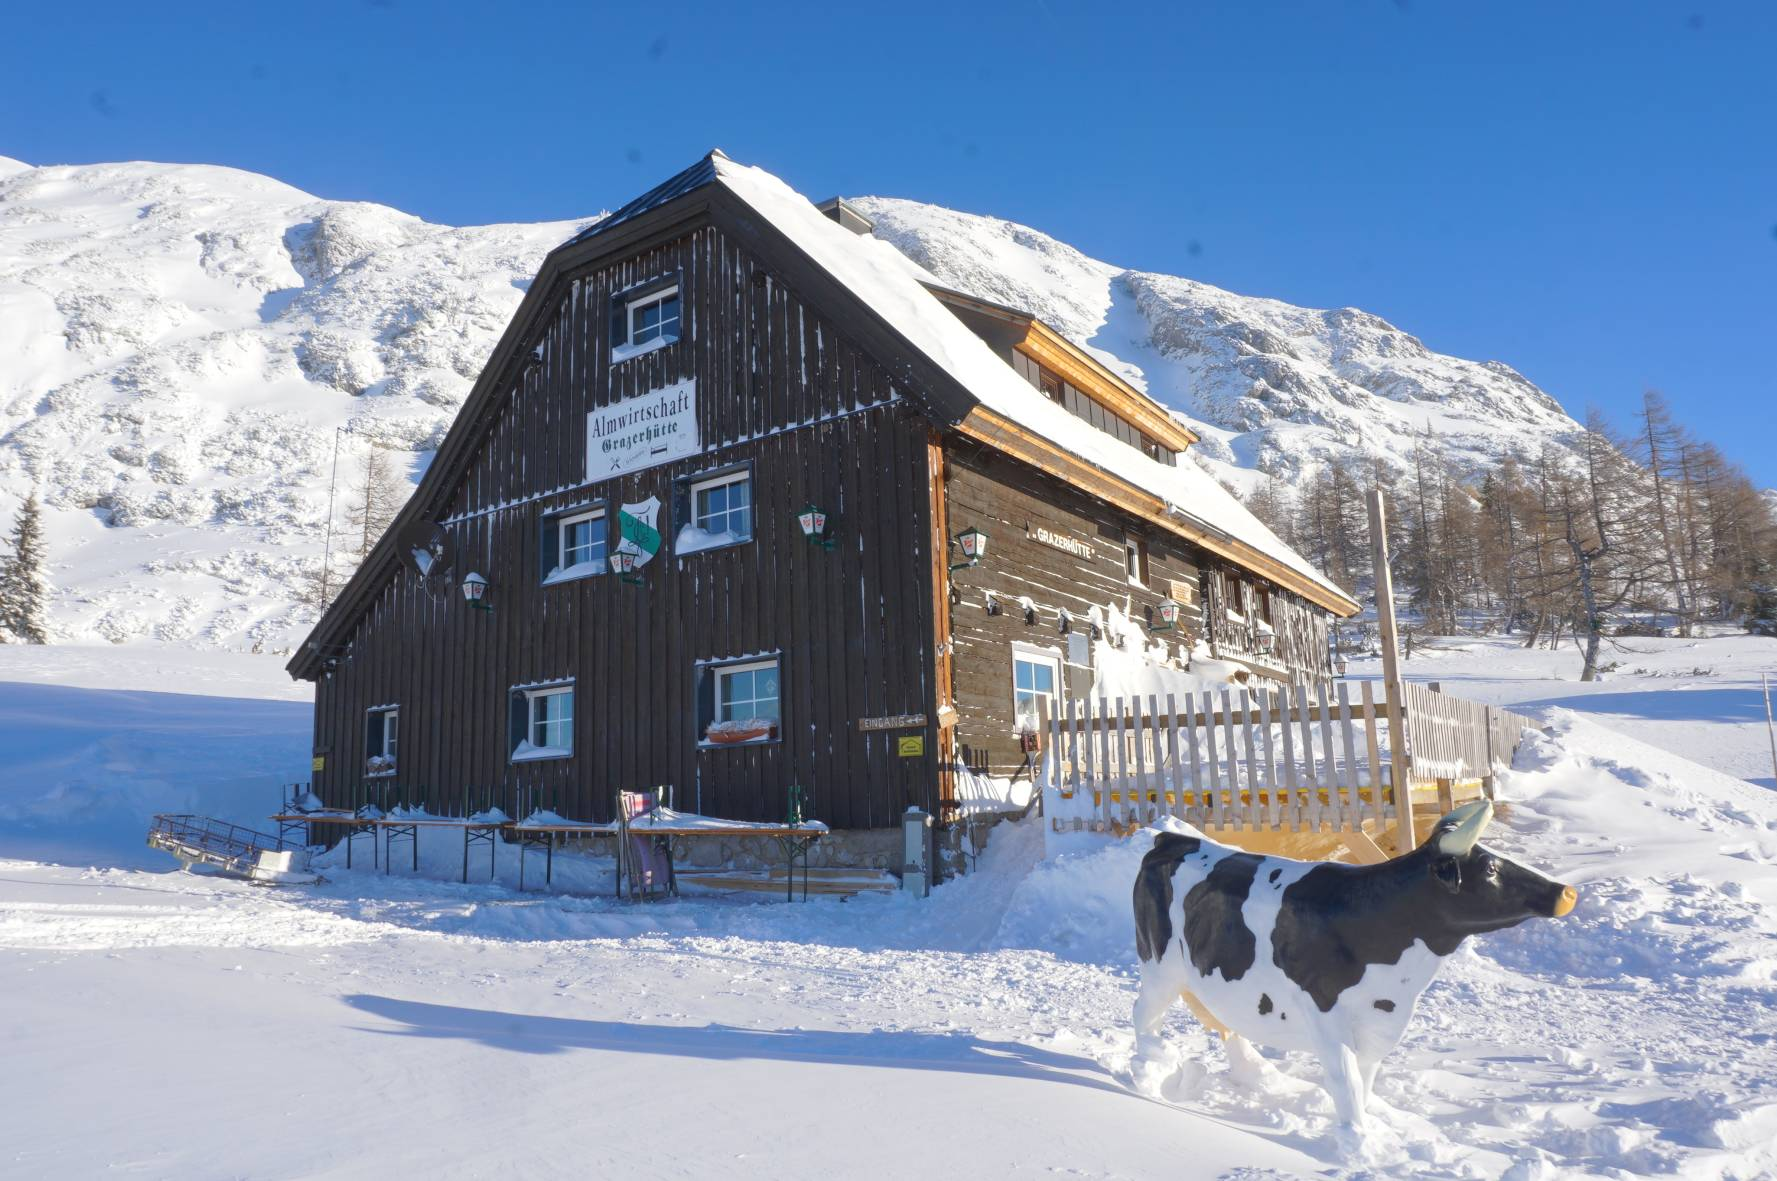 Grazerhütte in de winter